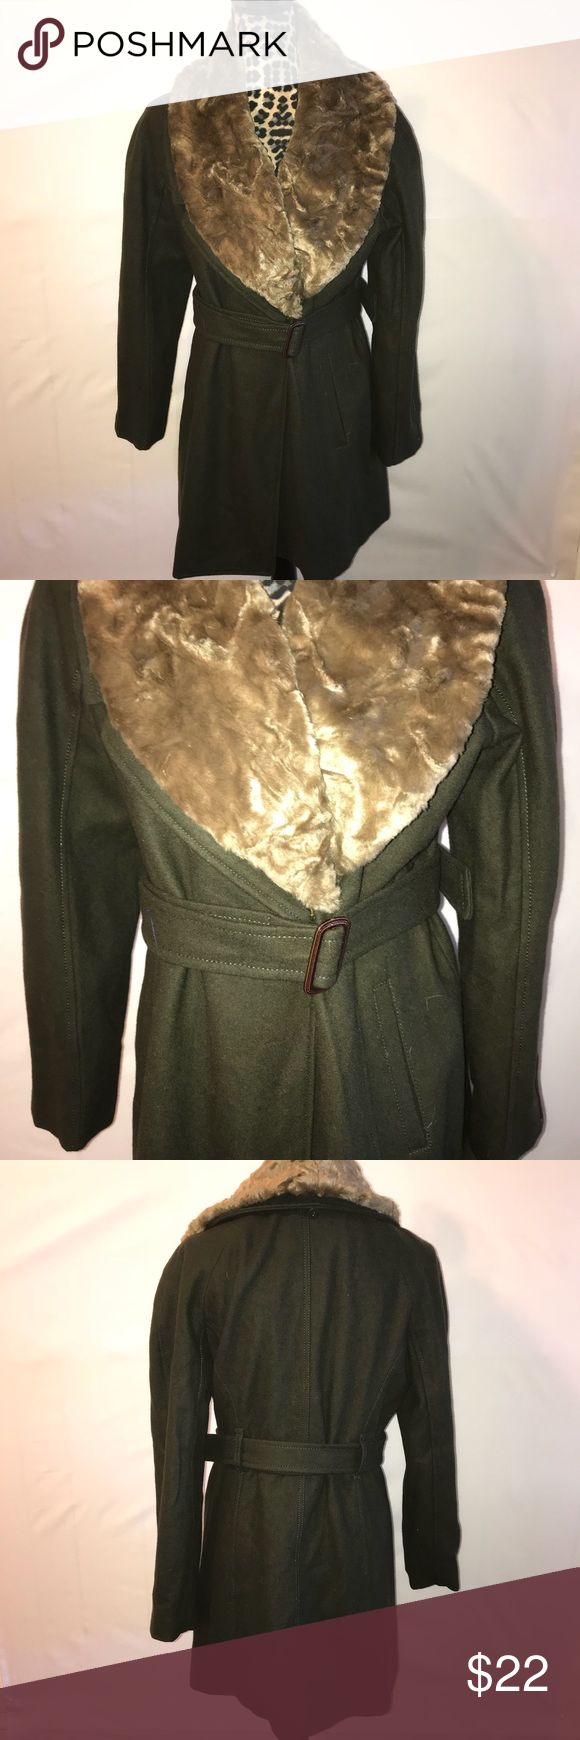 Women's Sz12 Nine West coat. Olive green faux fur Size 12 women's olive green coat. Has a removable faux fur collar and a belt that can be removed as well for a custom look. This is in gently used condition and shows hardly any wear. One of the buttons that connects the faux fur is a bit loose but doesn't affect the purpose of it. It still hold the fur in place. I am selling much cheaper because of that minor flaw. Other than that, it's in good used condition. Nine West Jackets & Coats